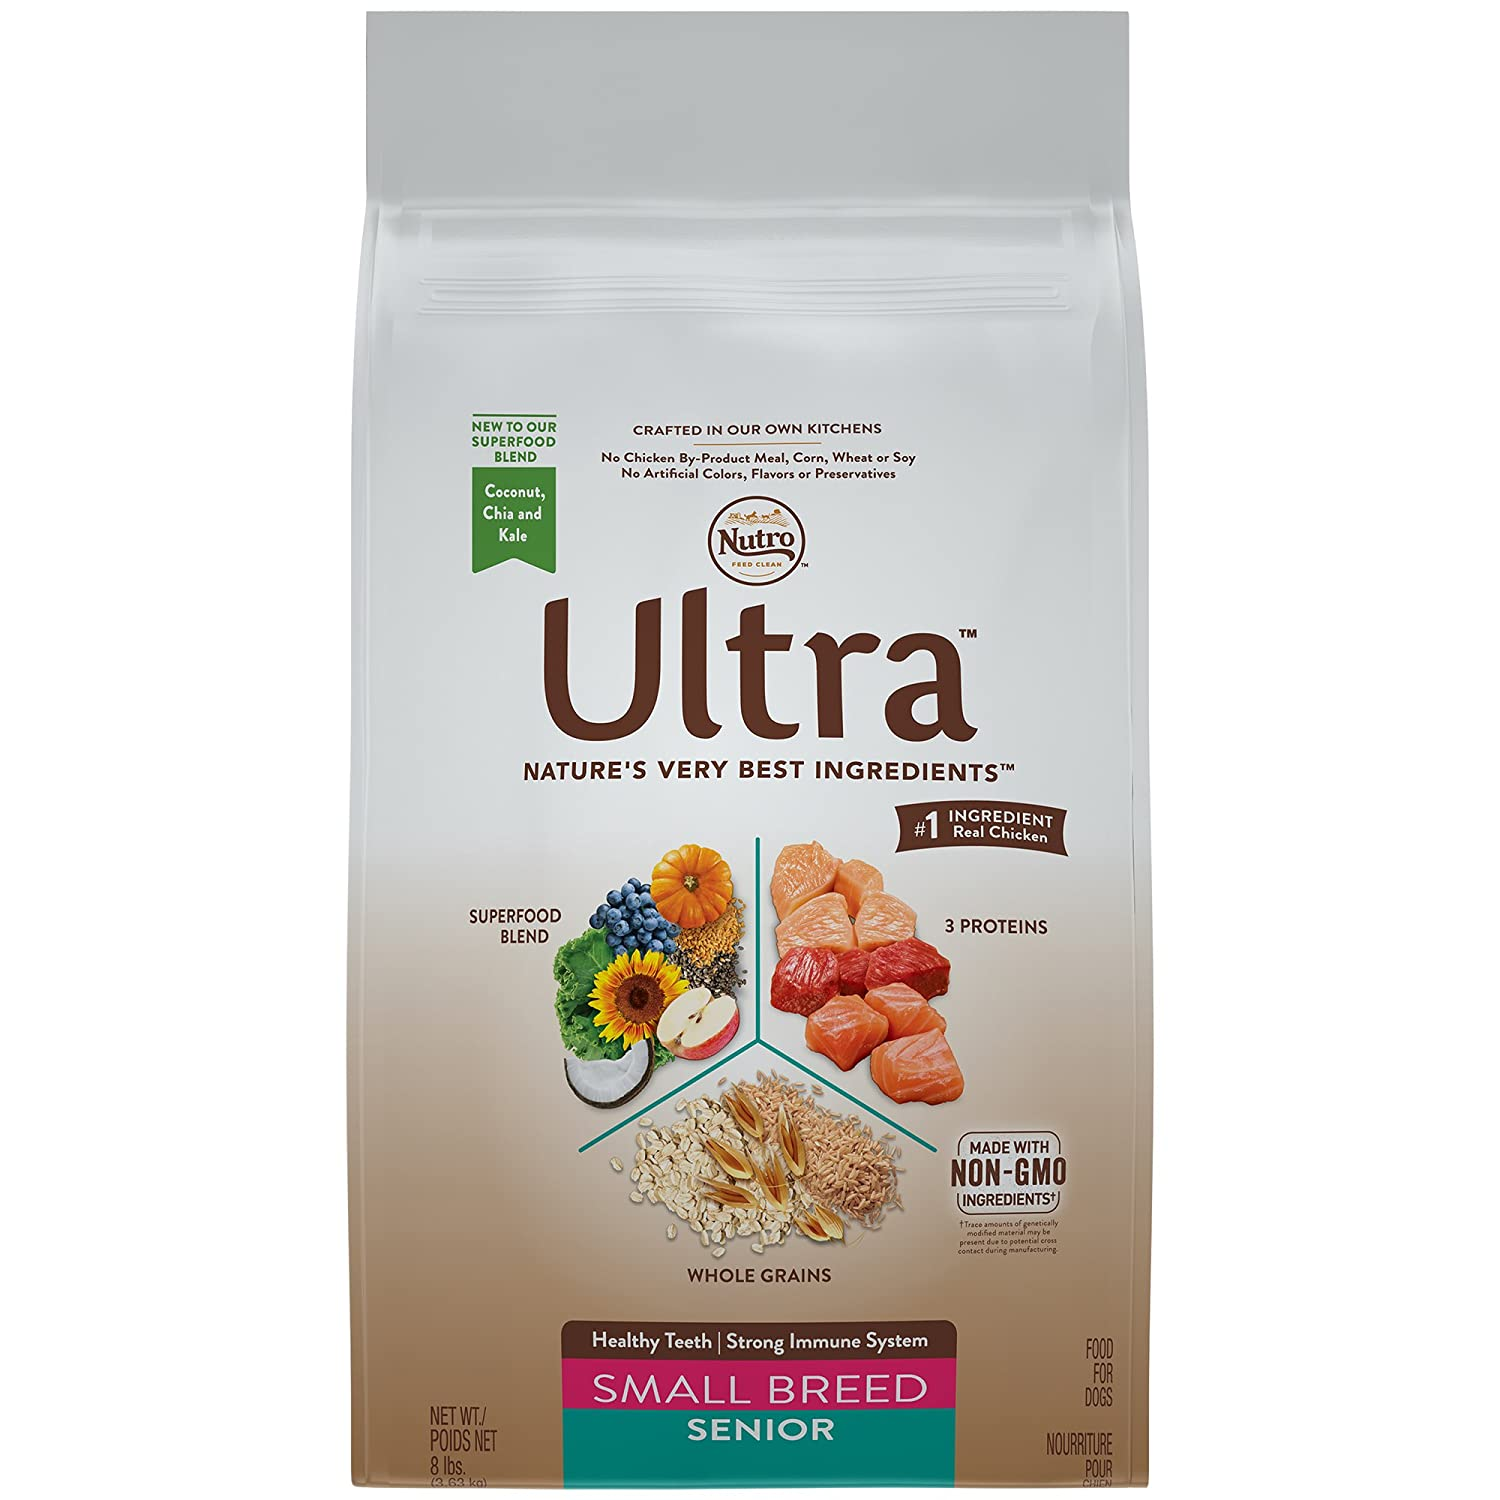 Nutro Ultra Dog Food >> Nutro Ultra Small Breed Senior Dry Dog Food 1 8 Pounds Supports Heathy Teeth And A Strong Immune System Rich In Nutrients And Full Of Flavor